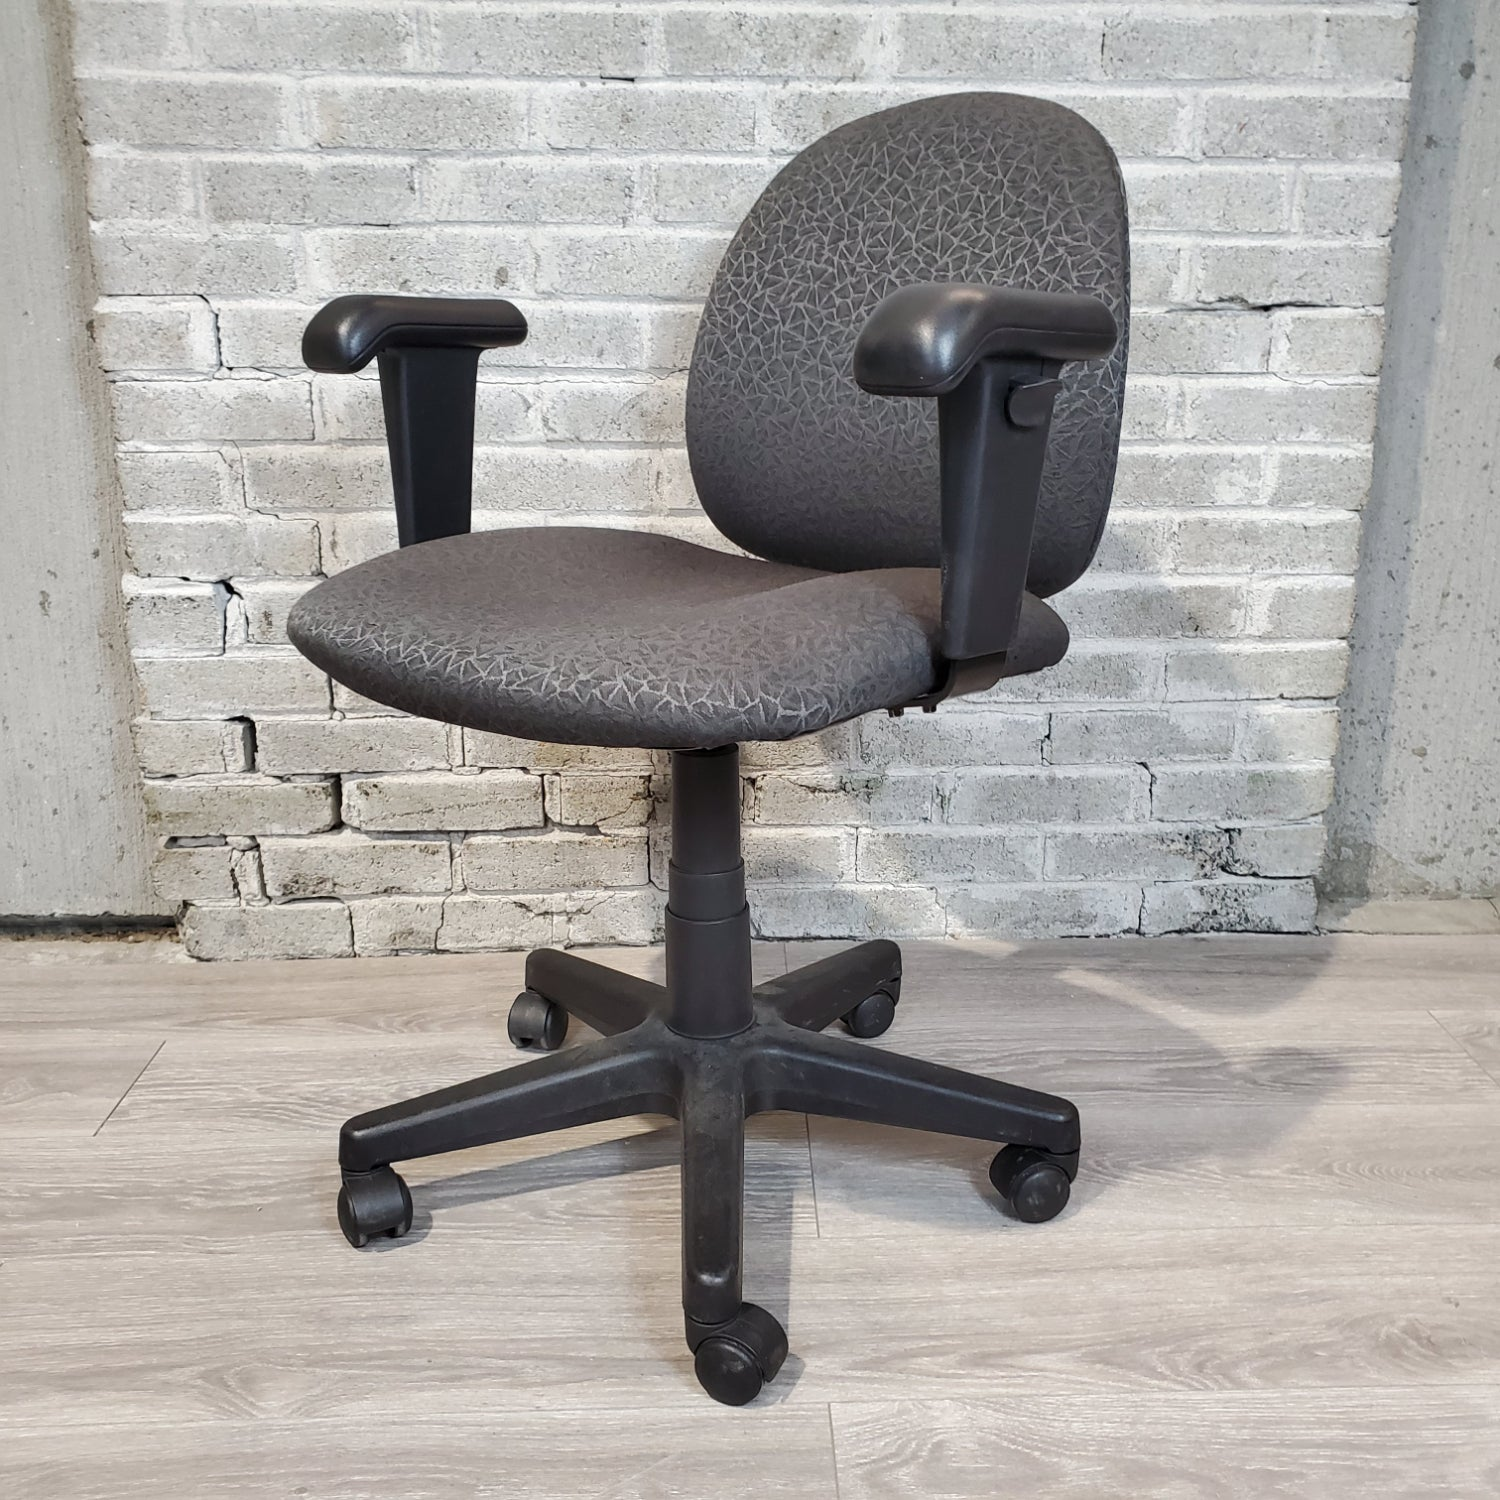 Pre-Owned - Used Upholstered Task Chair - Duckys Office Furniture